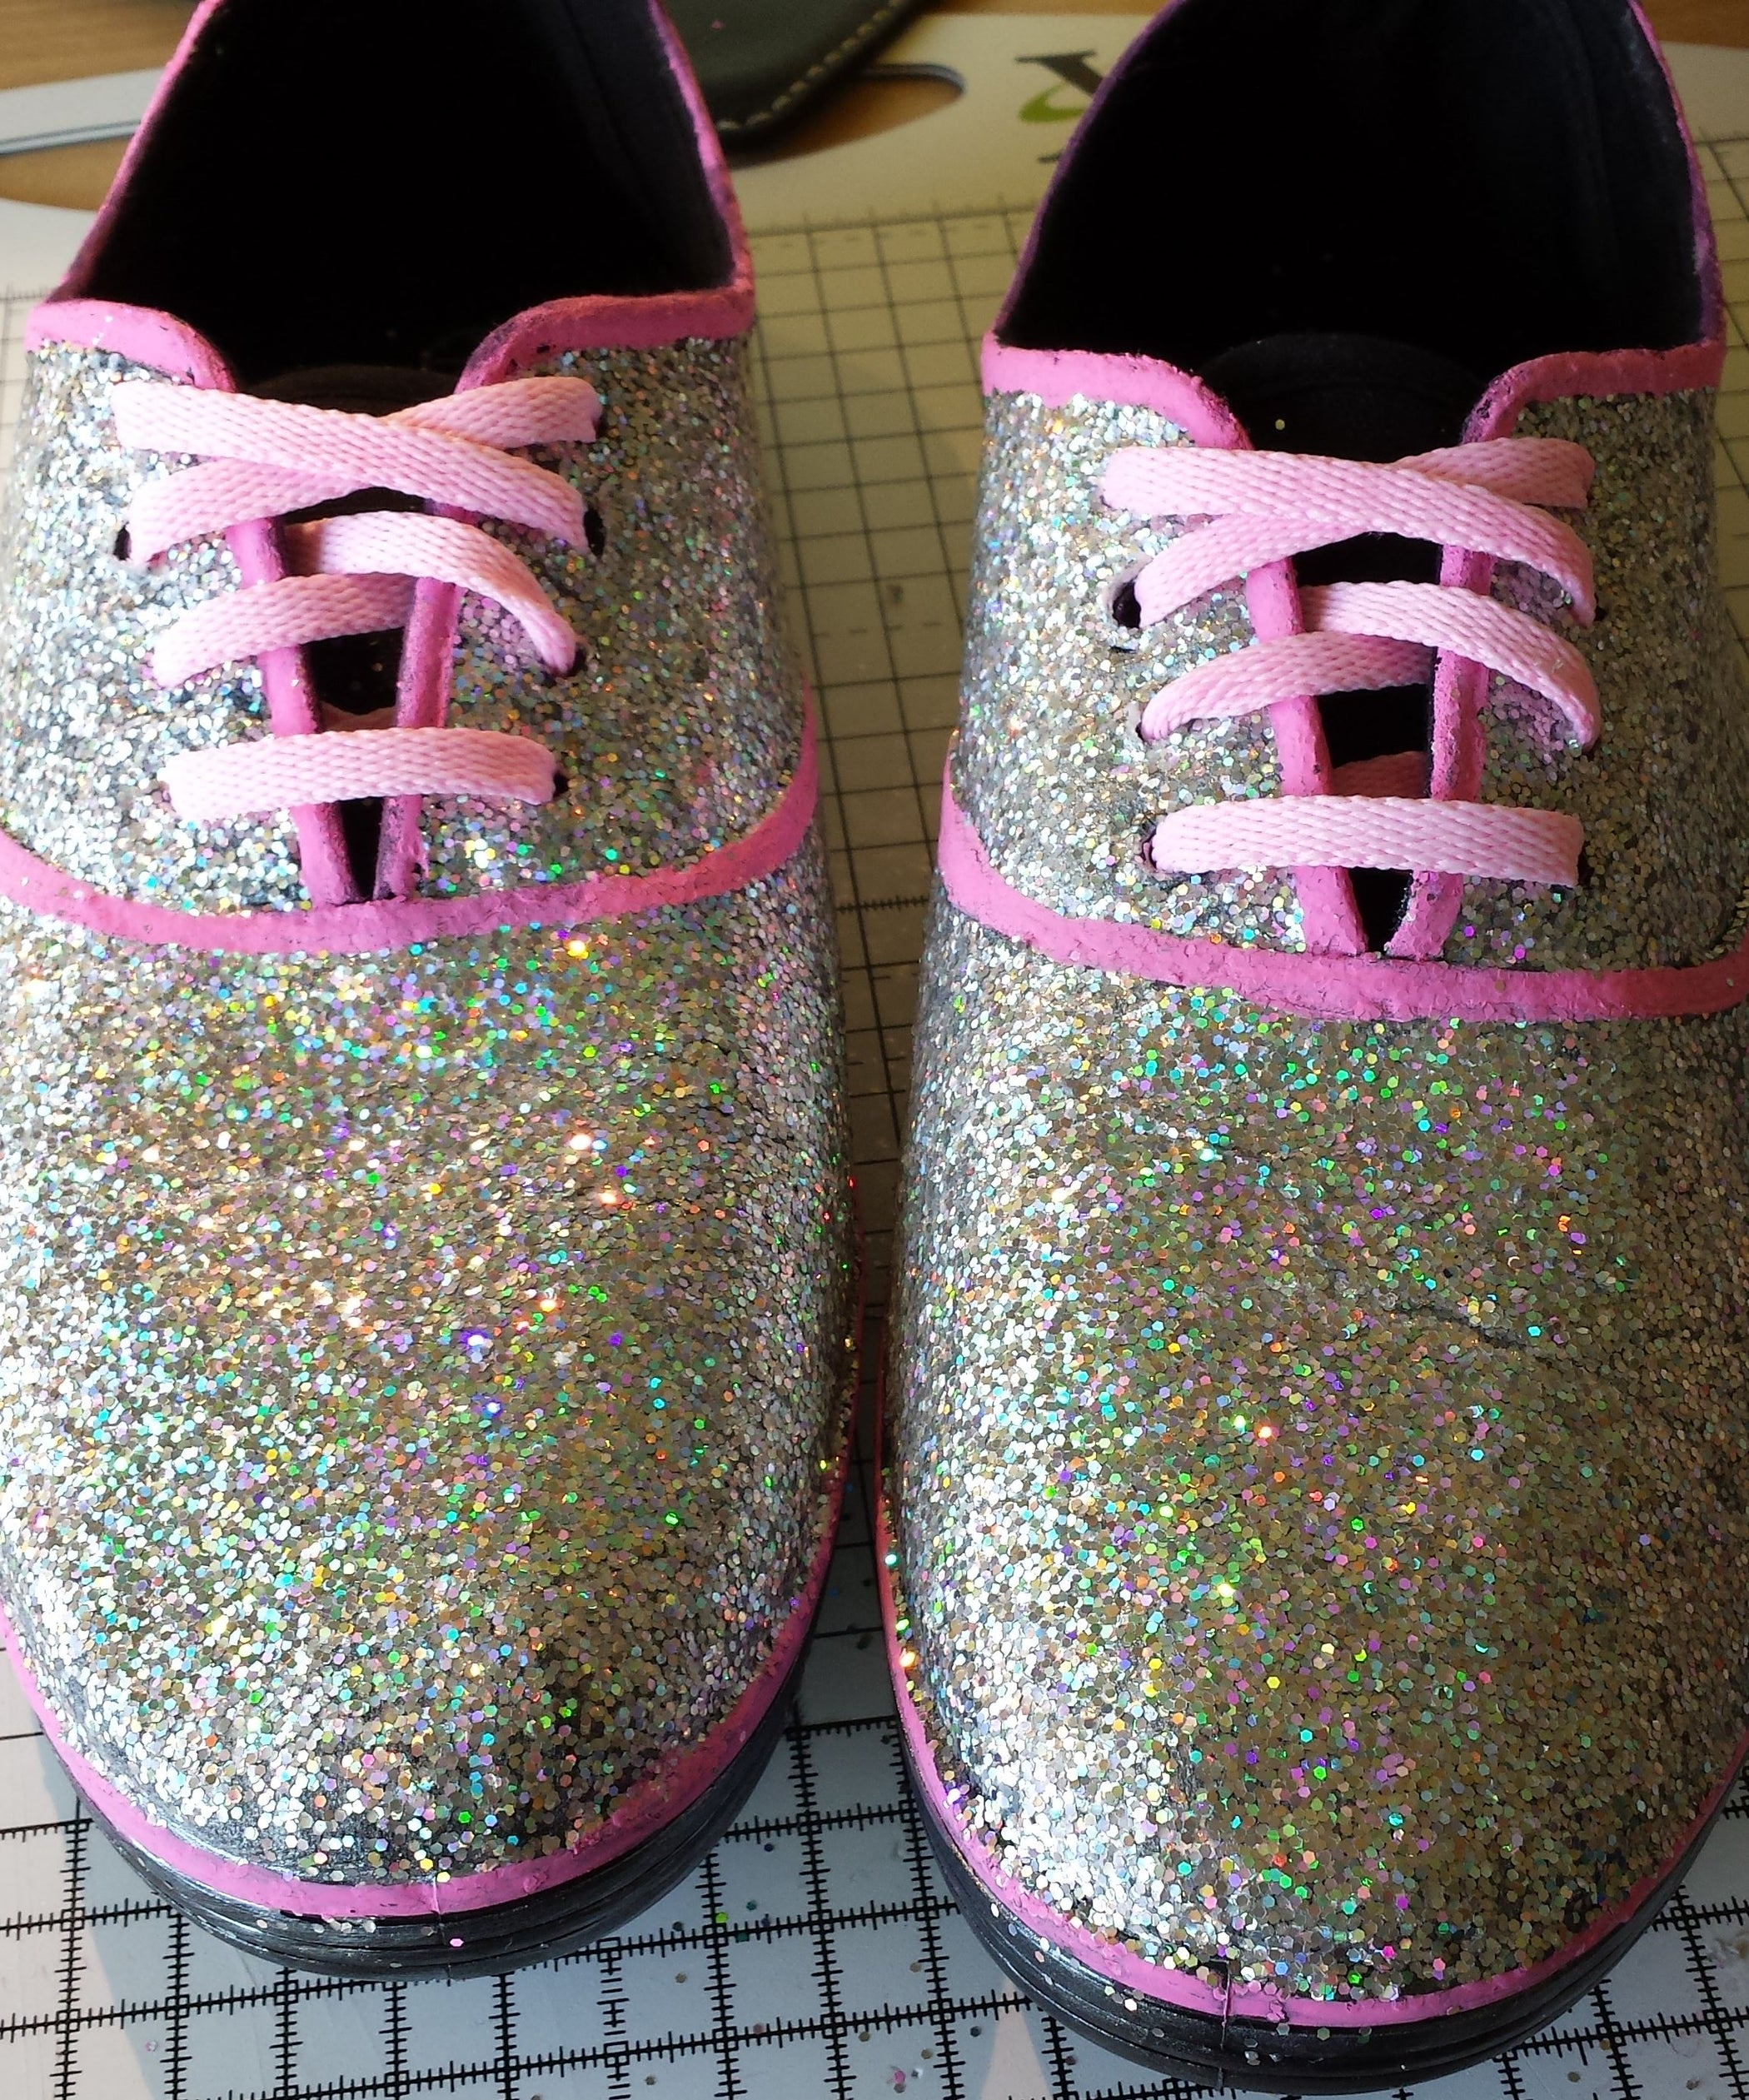 ecdb0ceb Glitter Trainers/Sneakers: 6 Steps (with Pictures)